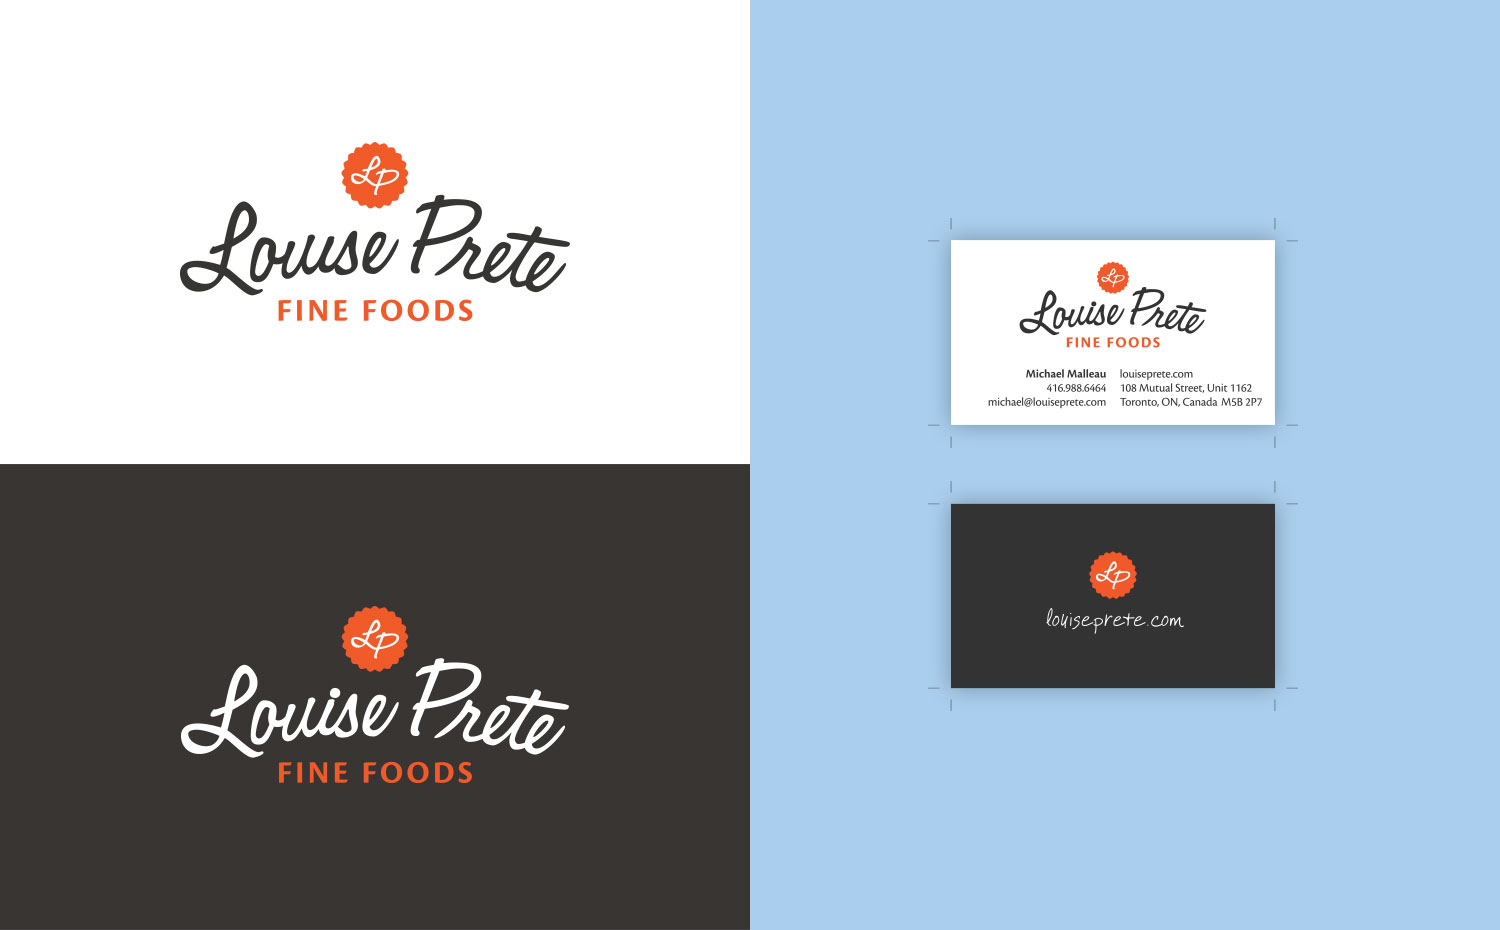 Louise Prete Fine Foods identity and business card